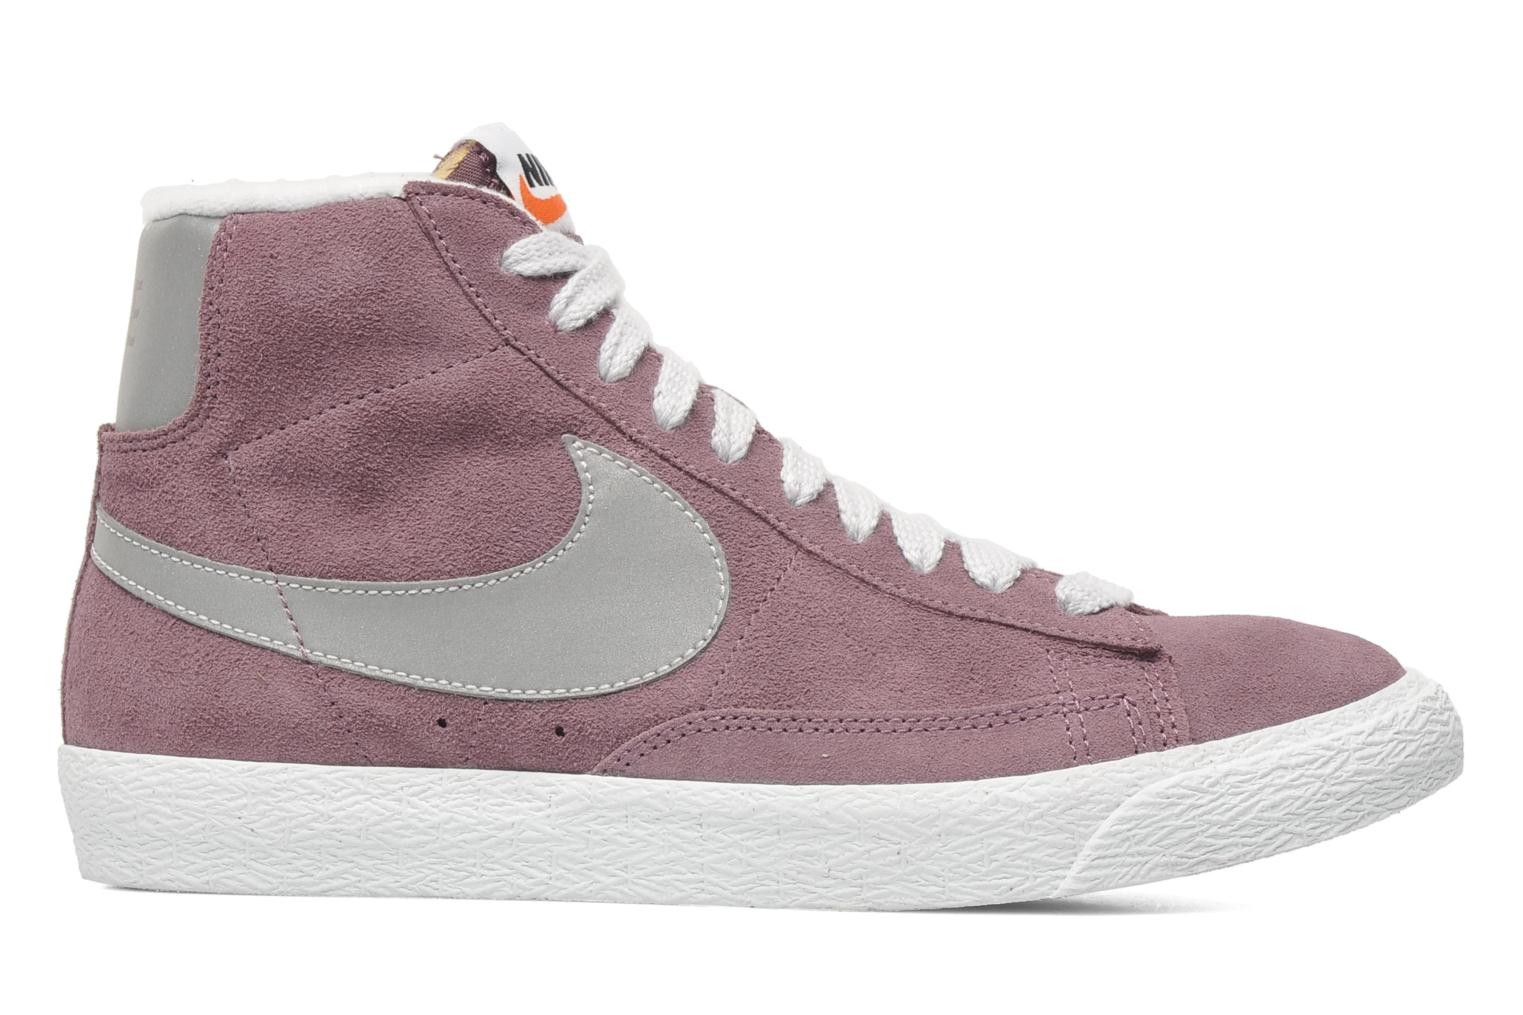 Nike Blazer Mid Prm Vintage Suede Purple Shade Reflect Silver Pure Platinium Men's Shoe